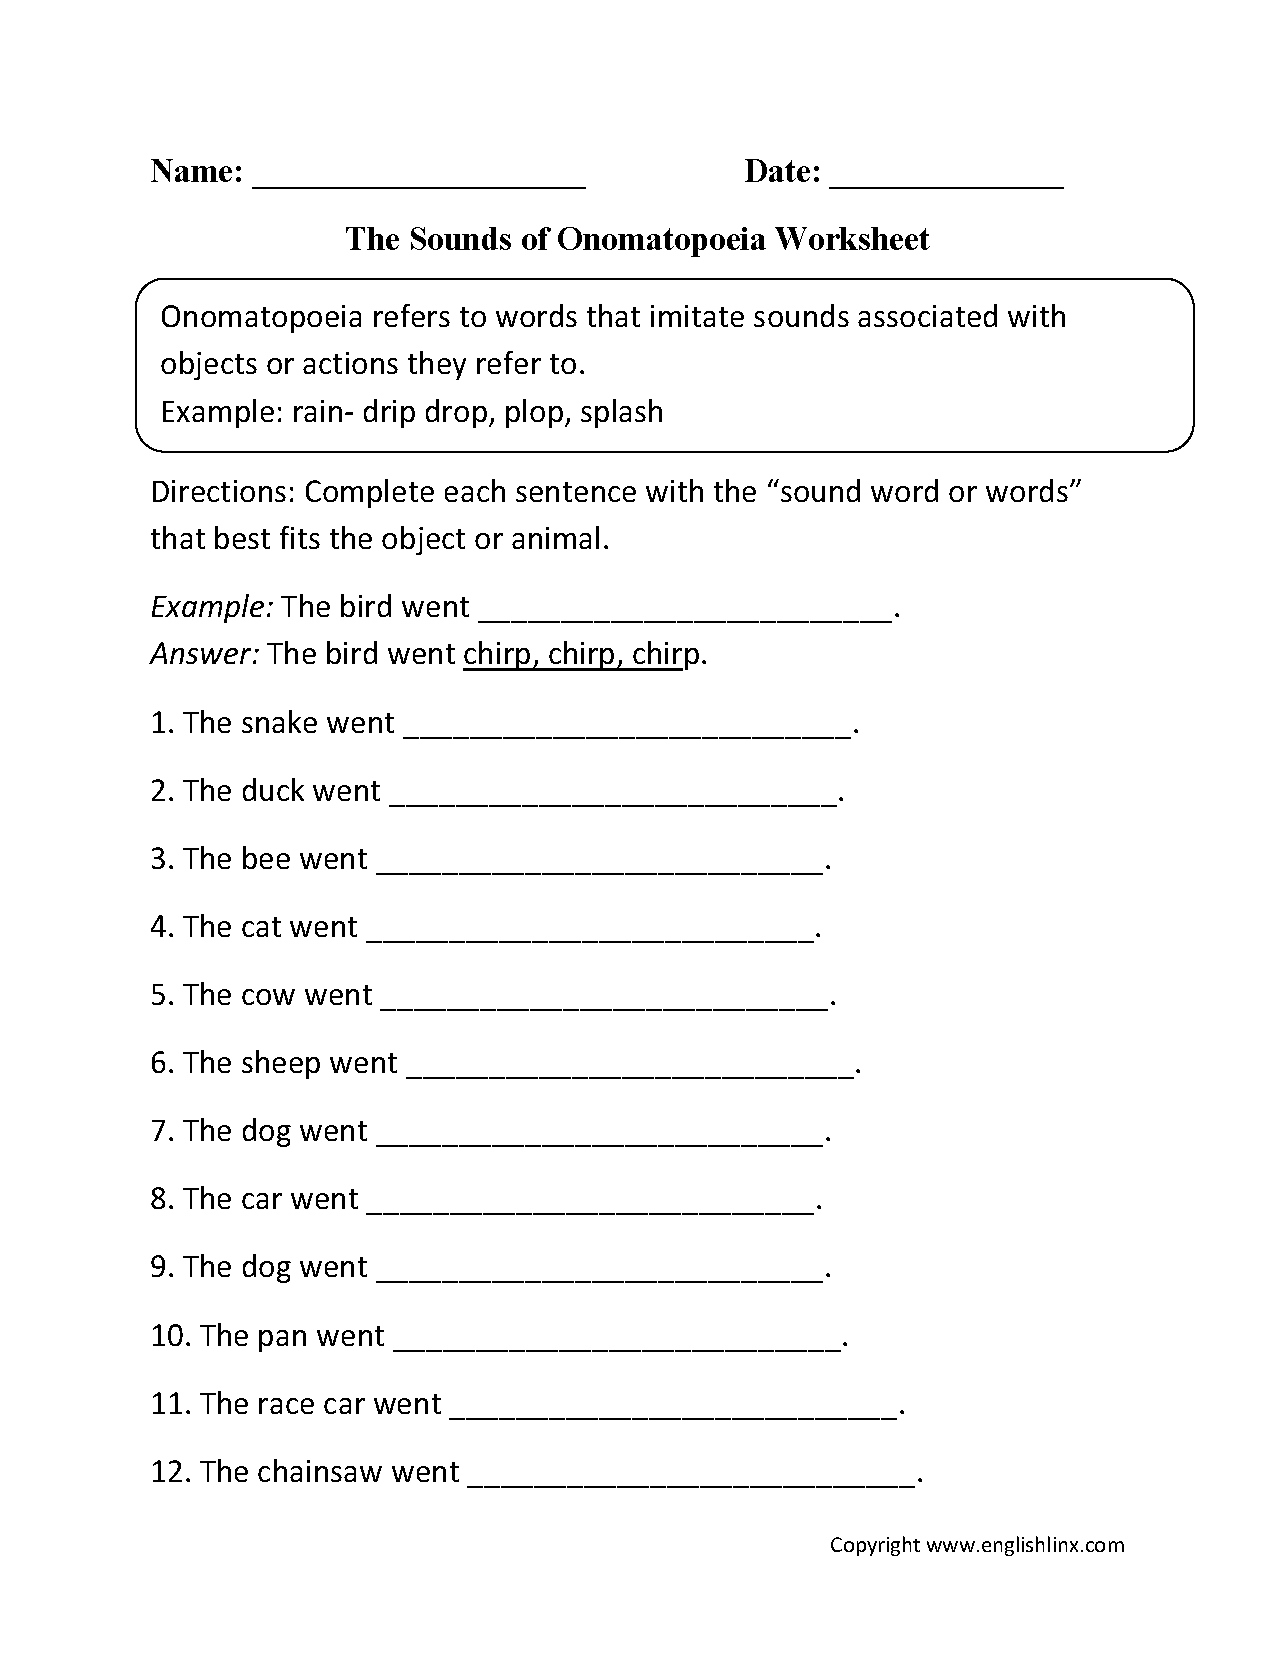 Aldiablosus  Outstanding Englishlinxcom  Onomatopoeia Worksheets With Heavenly Worksheet With Breathtaking Label Water Cycle Worksheet Also Persuade Inform Entertain Worksheets In Addition Handwriting Worksheets Sentences And Middle School Comprehension Worksheets As Well As Life Cycle Of A Butterfly Worksheet Free Printable Additionally Botany Worksheets From Englishlinxcom With Aldiablosus  Heavenly Englishlinxcom  Onomatopoeia Worksheets With Breathtaking Worksheet And Outstanding Label Water Cycle Worksheet Also Persuade Inform Entertain Worksheets In Addition Handwriting Worksheets Sentences From Englishlinxcom